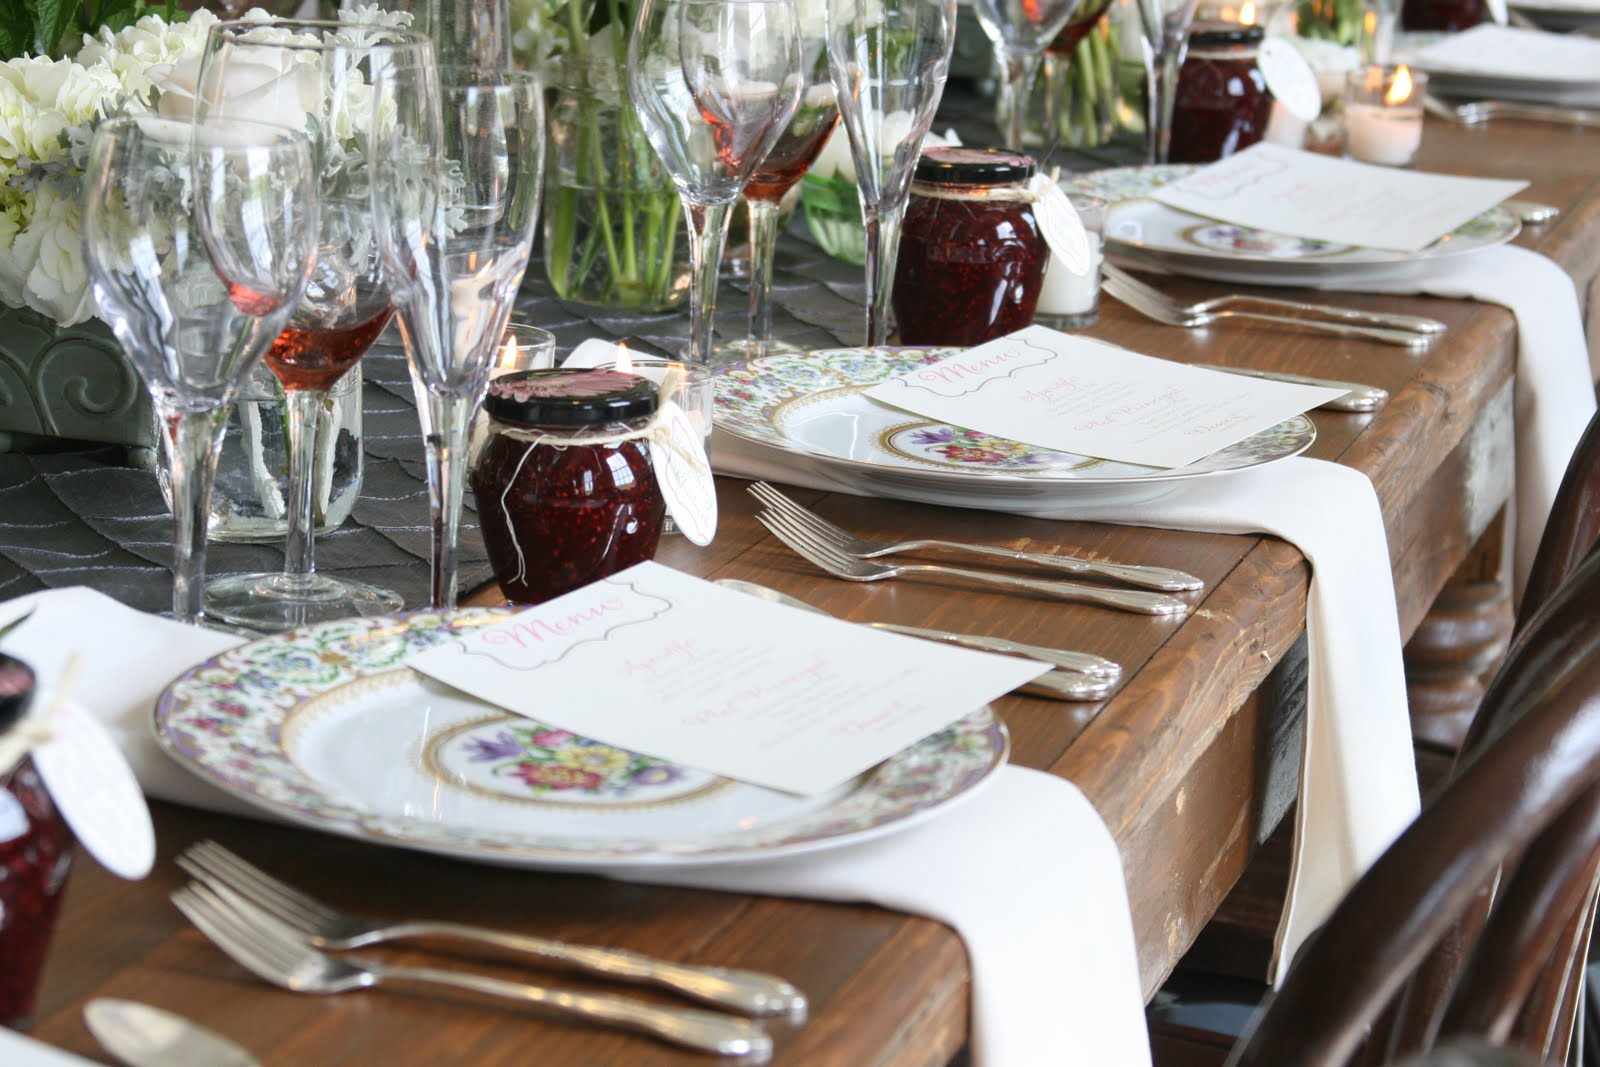 ... Christmas table settings | Country. Wednesday June 8 2011 & country style table settings \u2013 Loris Decoration